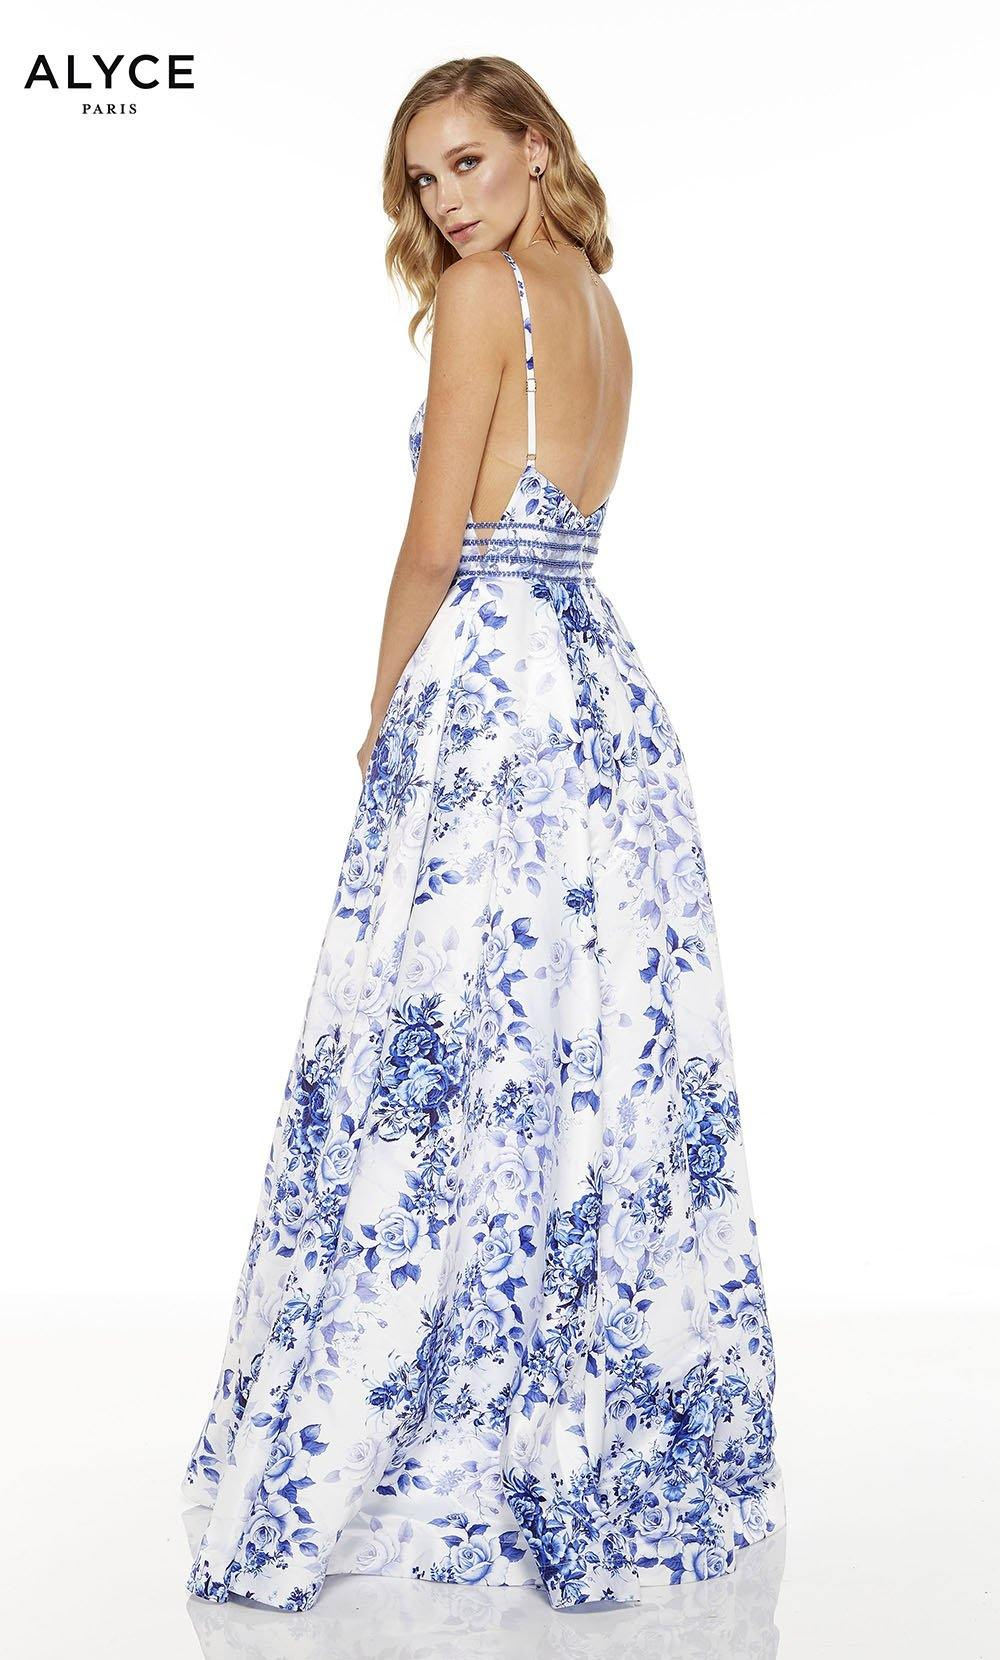 Diamond White-Royal formal dress with floral print and open back